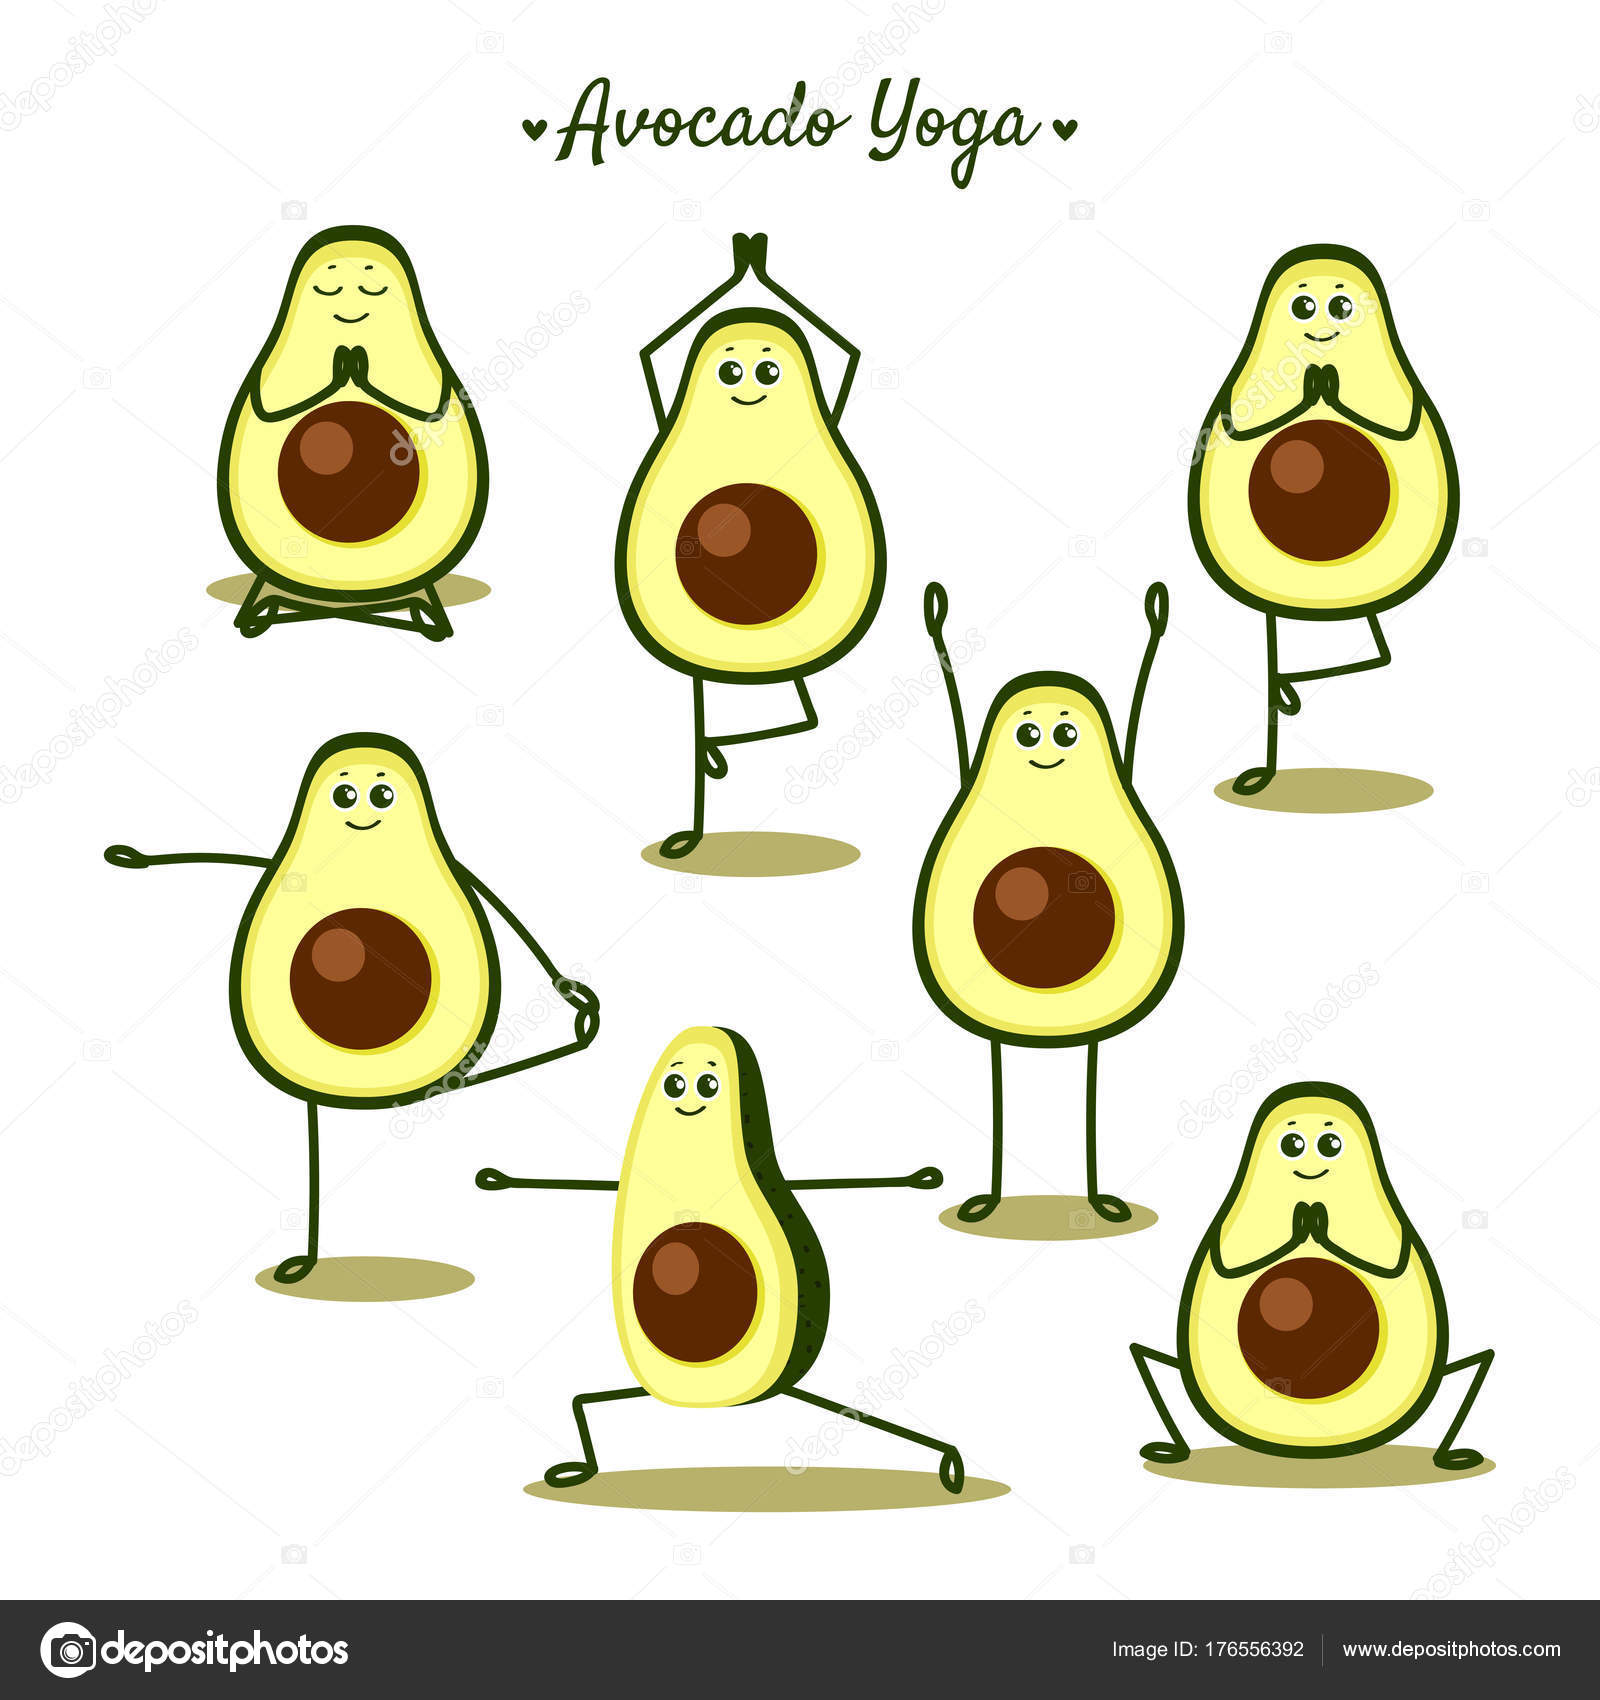 Avocado Yoga Funny Vector Illustration Poses Fruits Stock